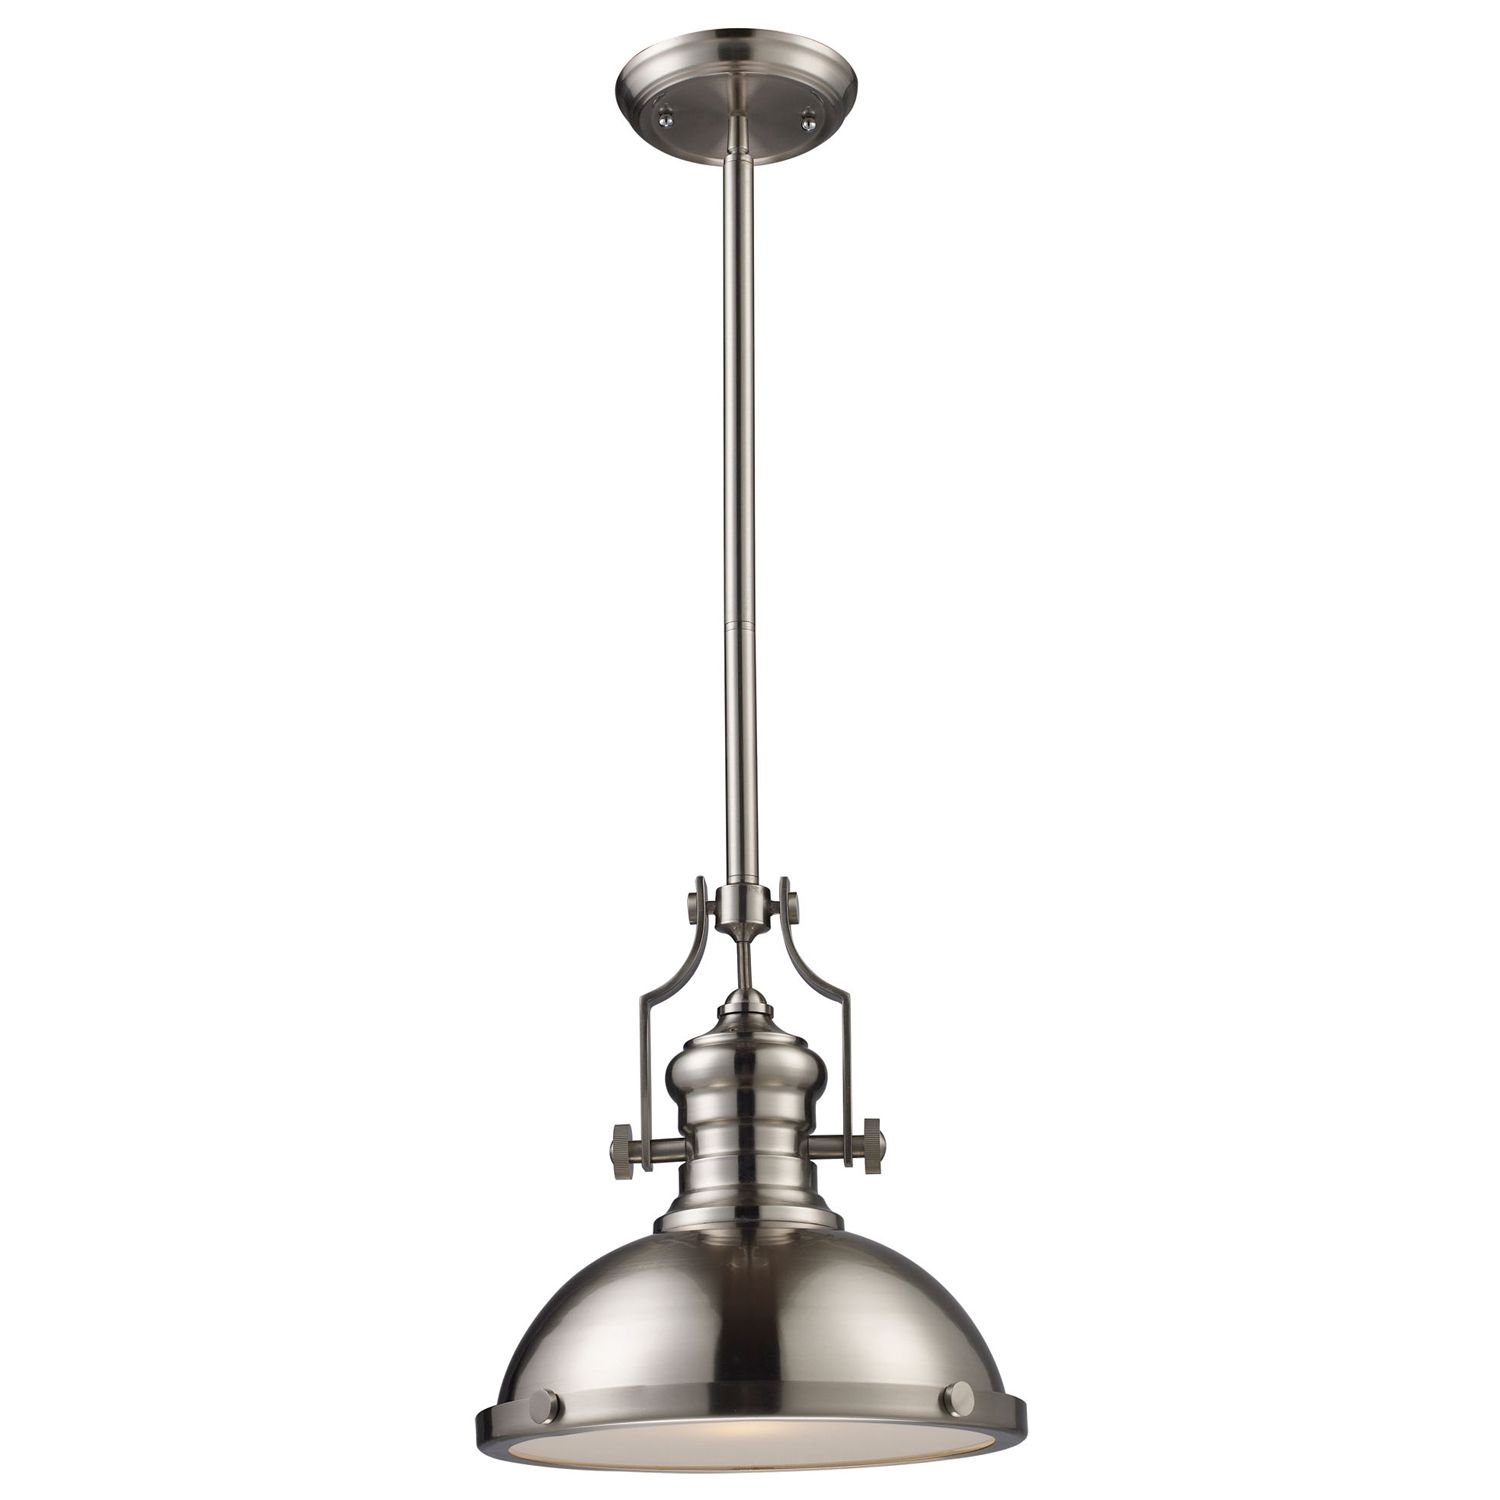 Chadwick Satin Nickel Medium Pendant ELK661241